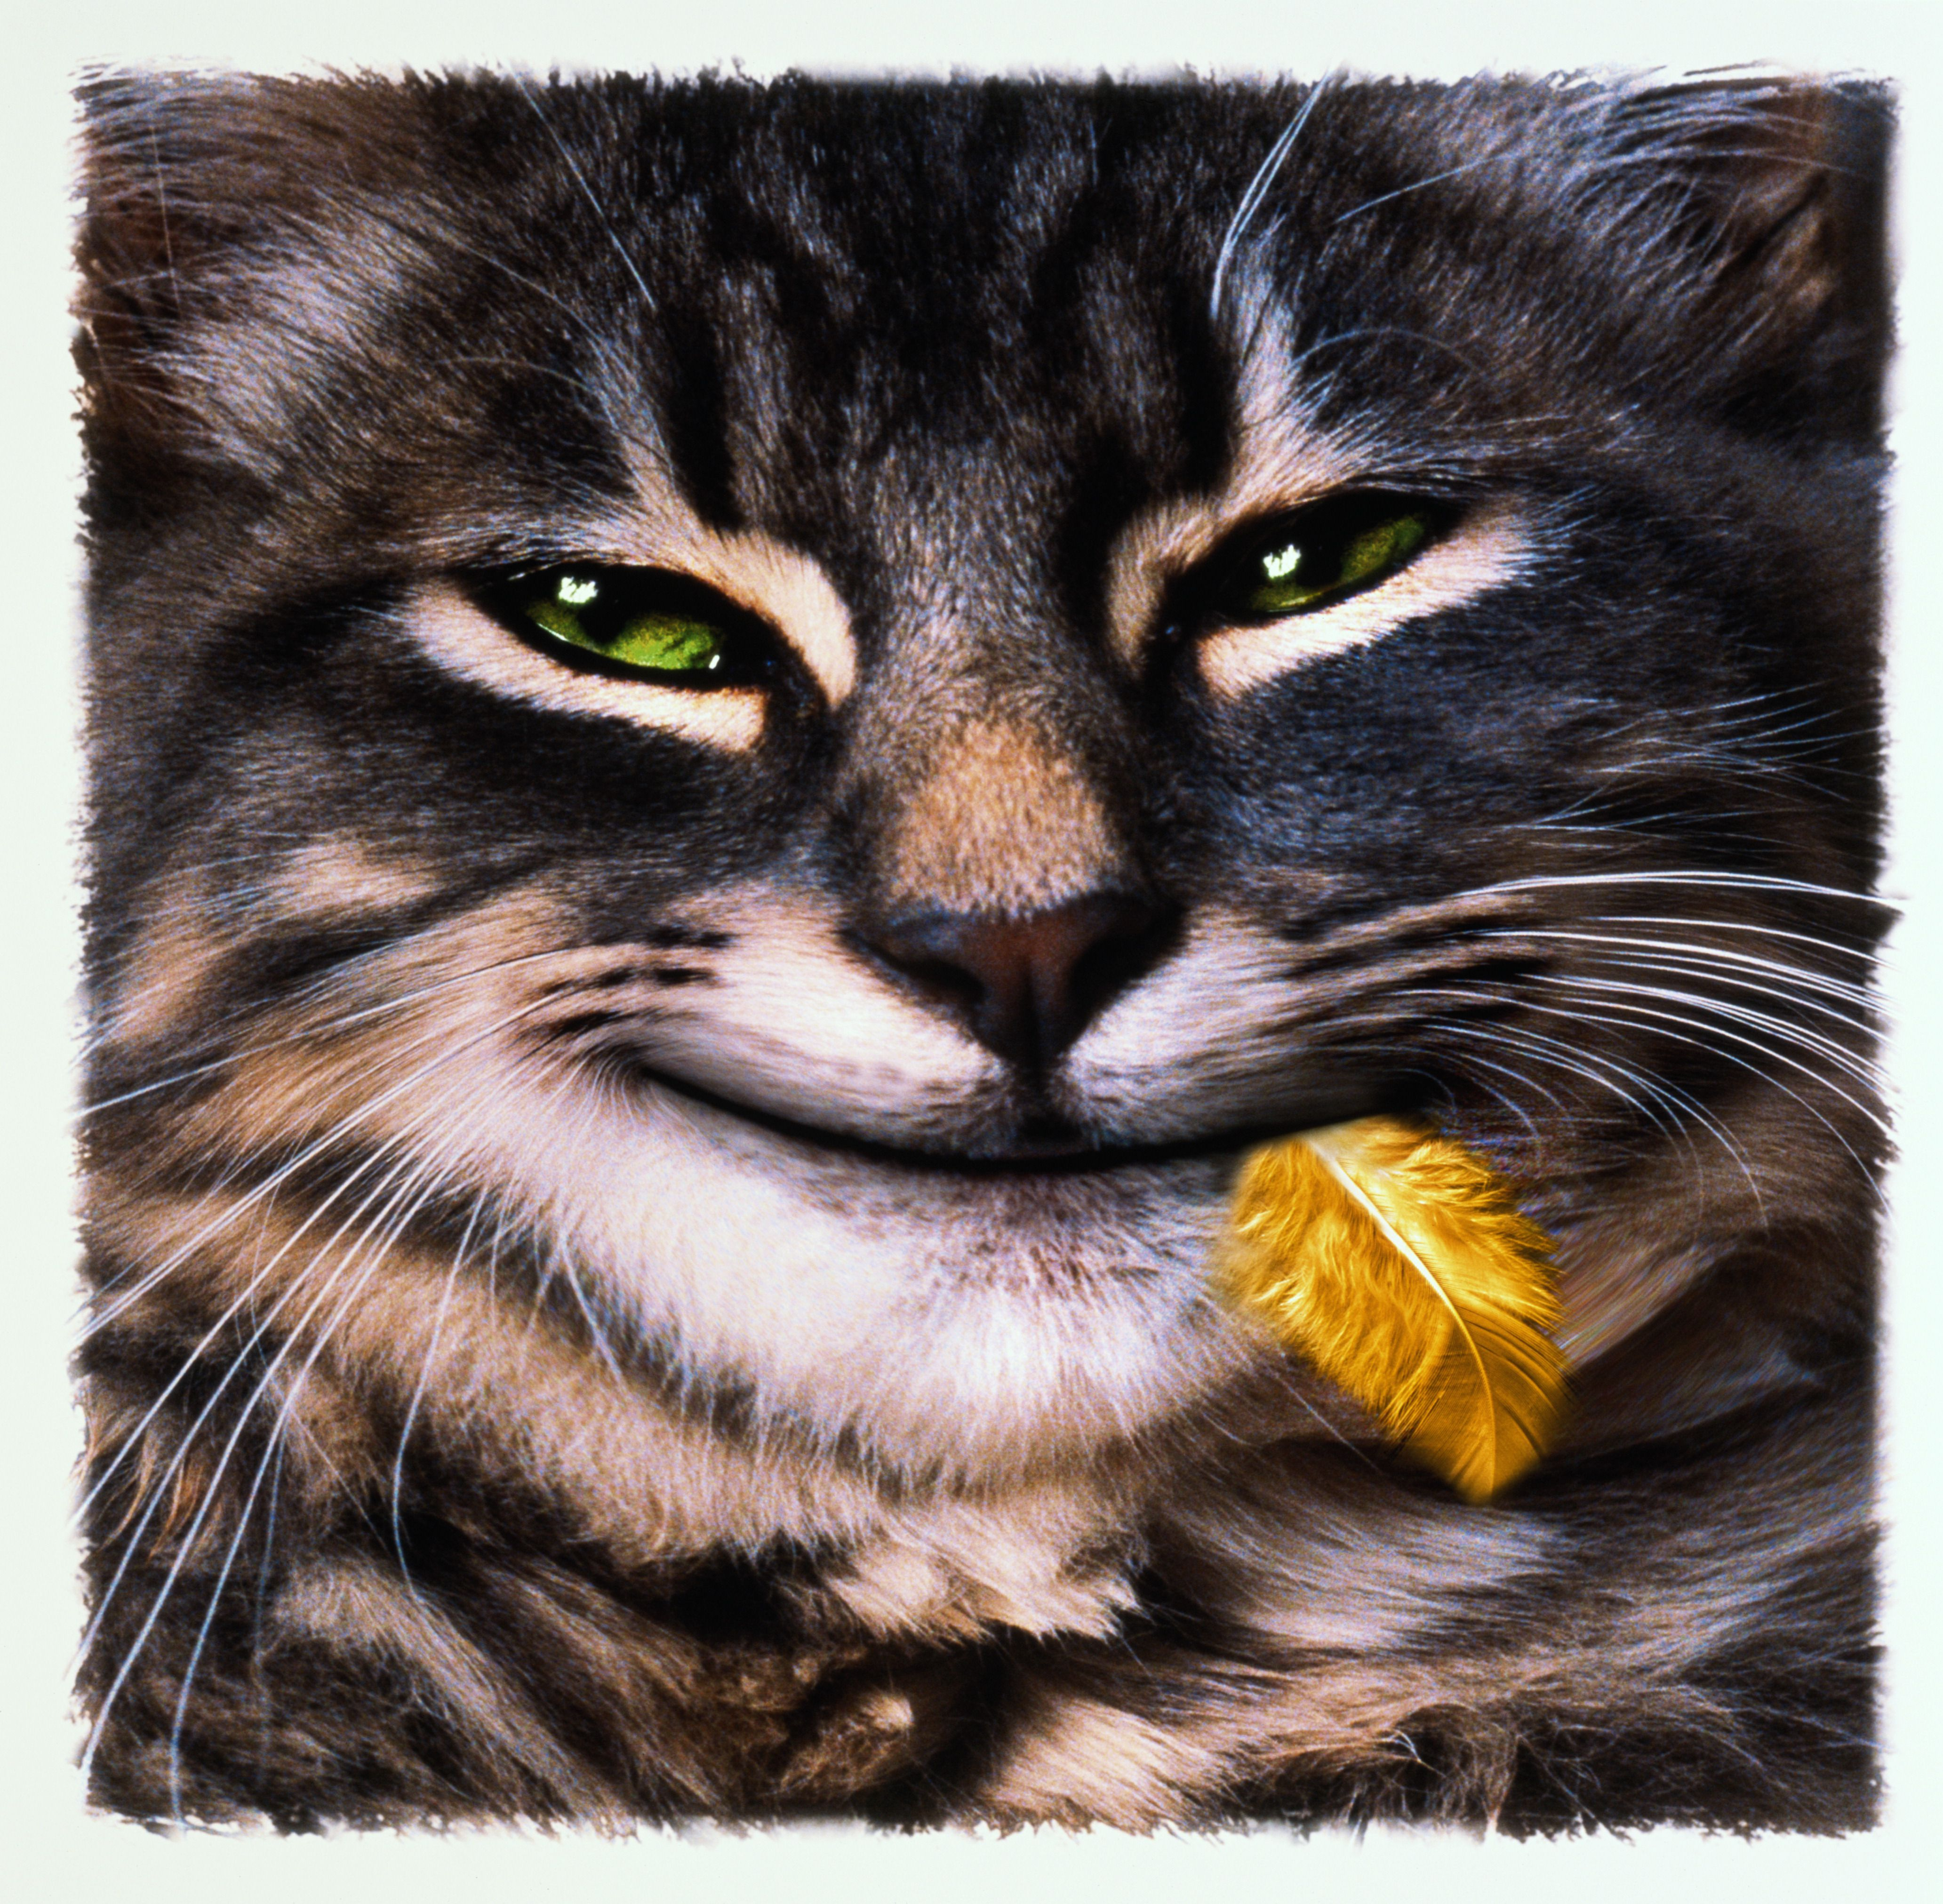 Cat with bird feather in mouth and smile on face (Digital Composite)